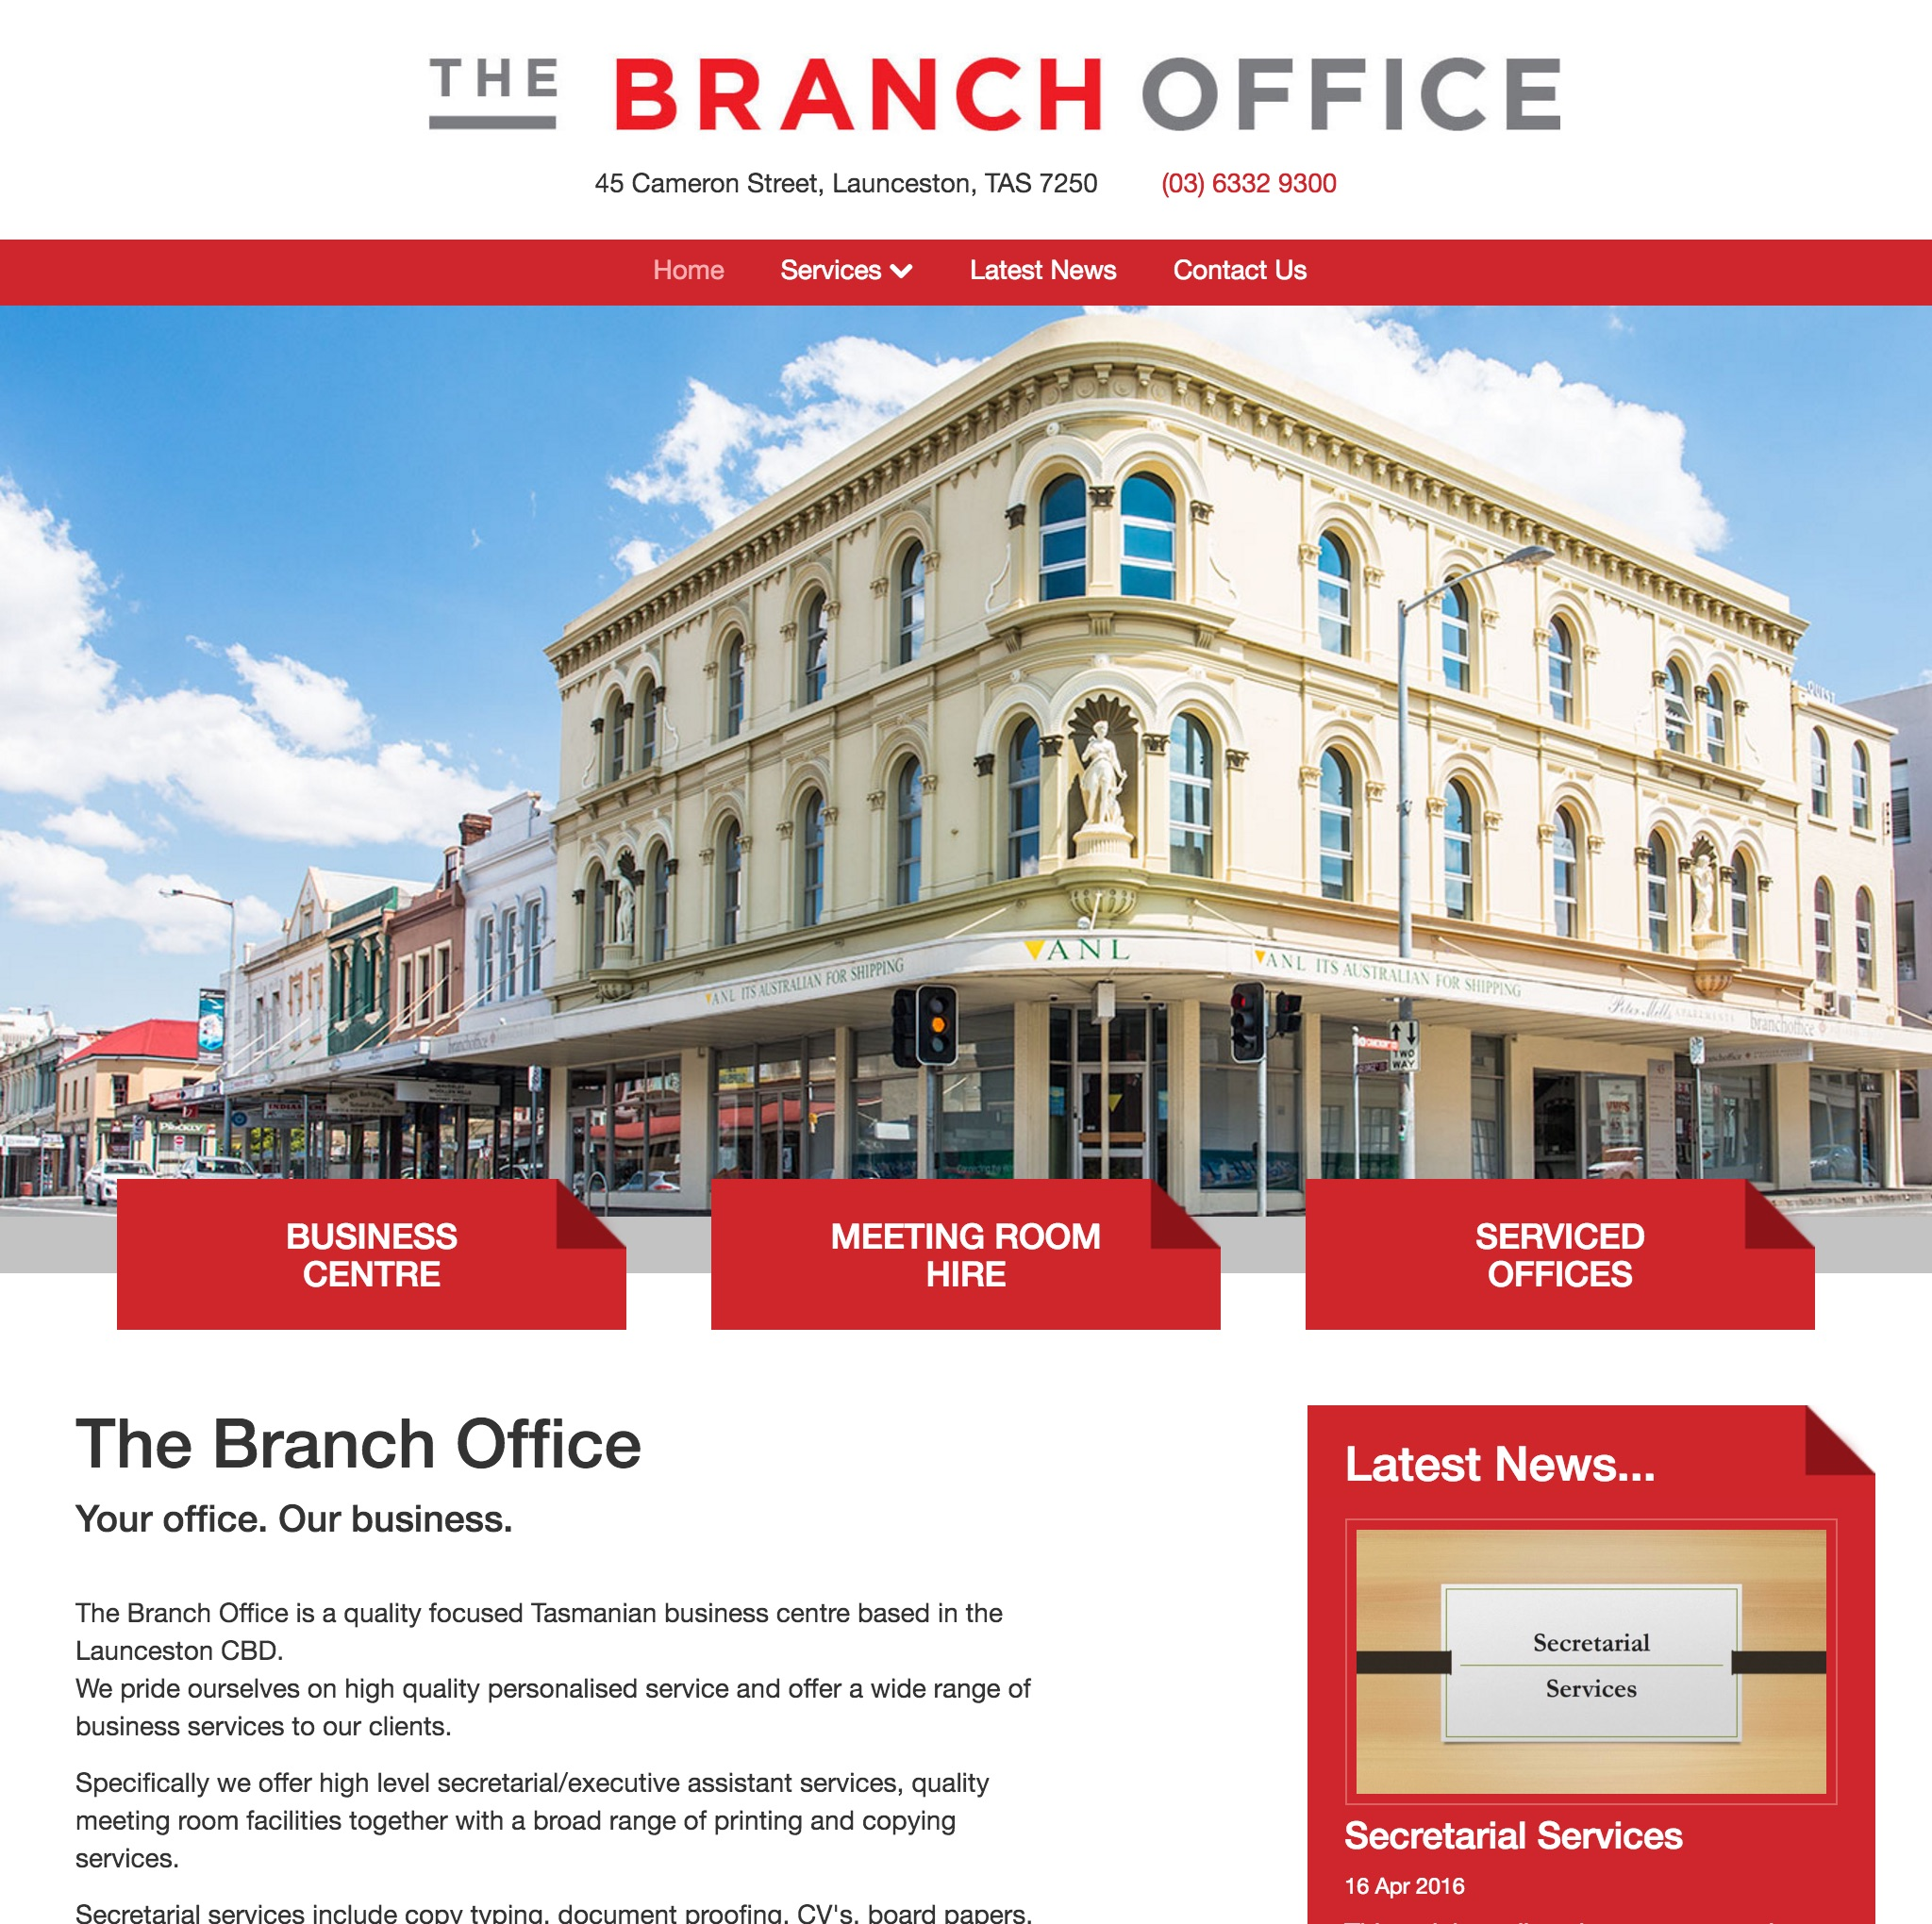 The Branch Office website